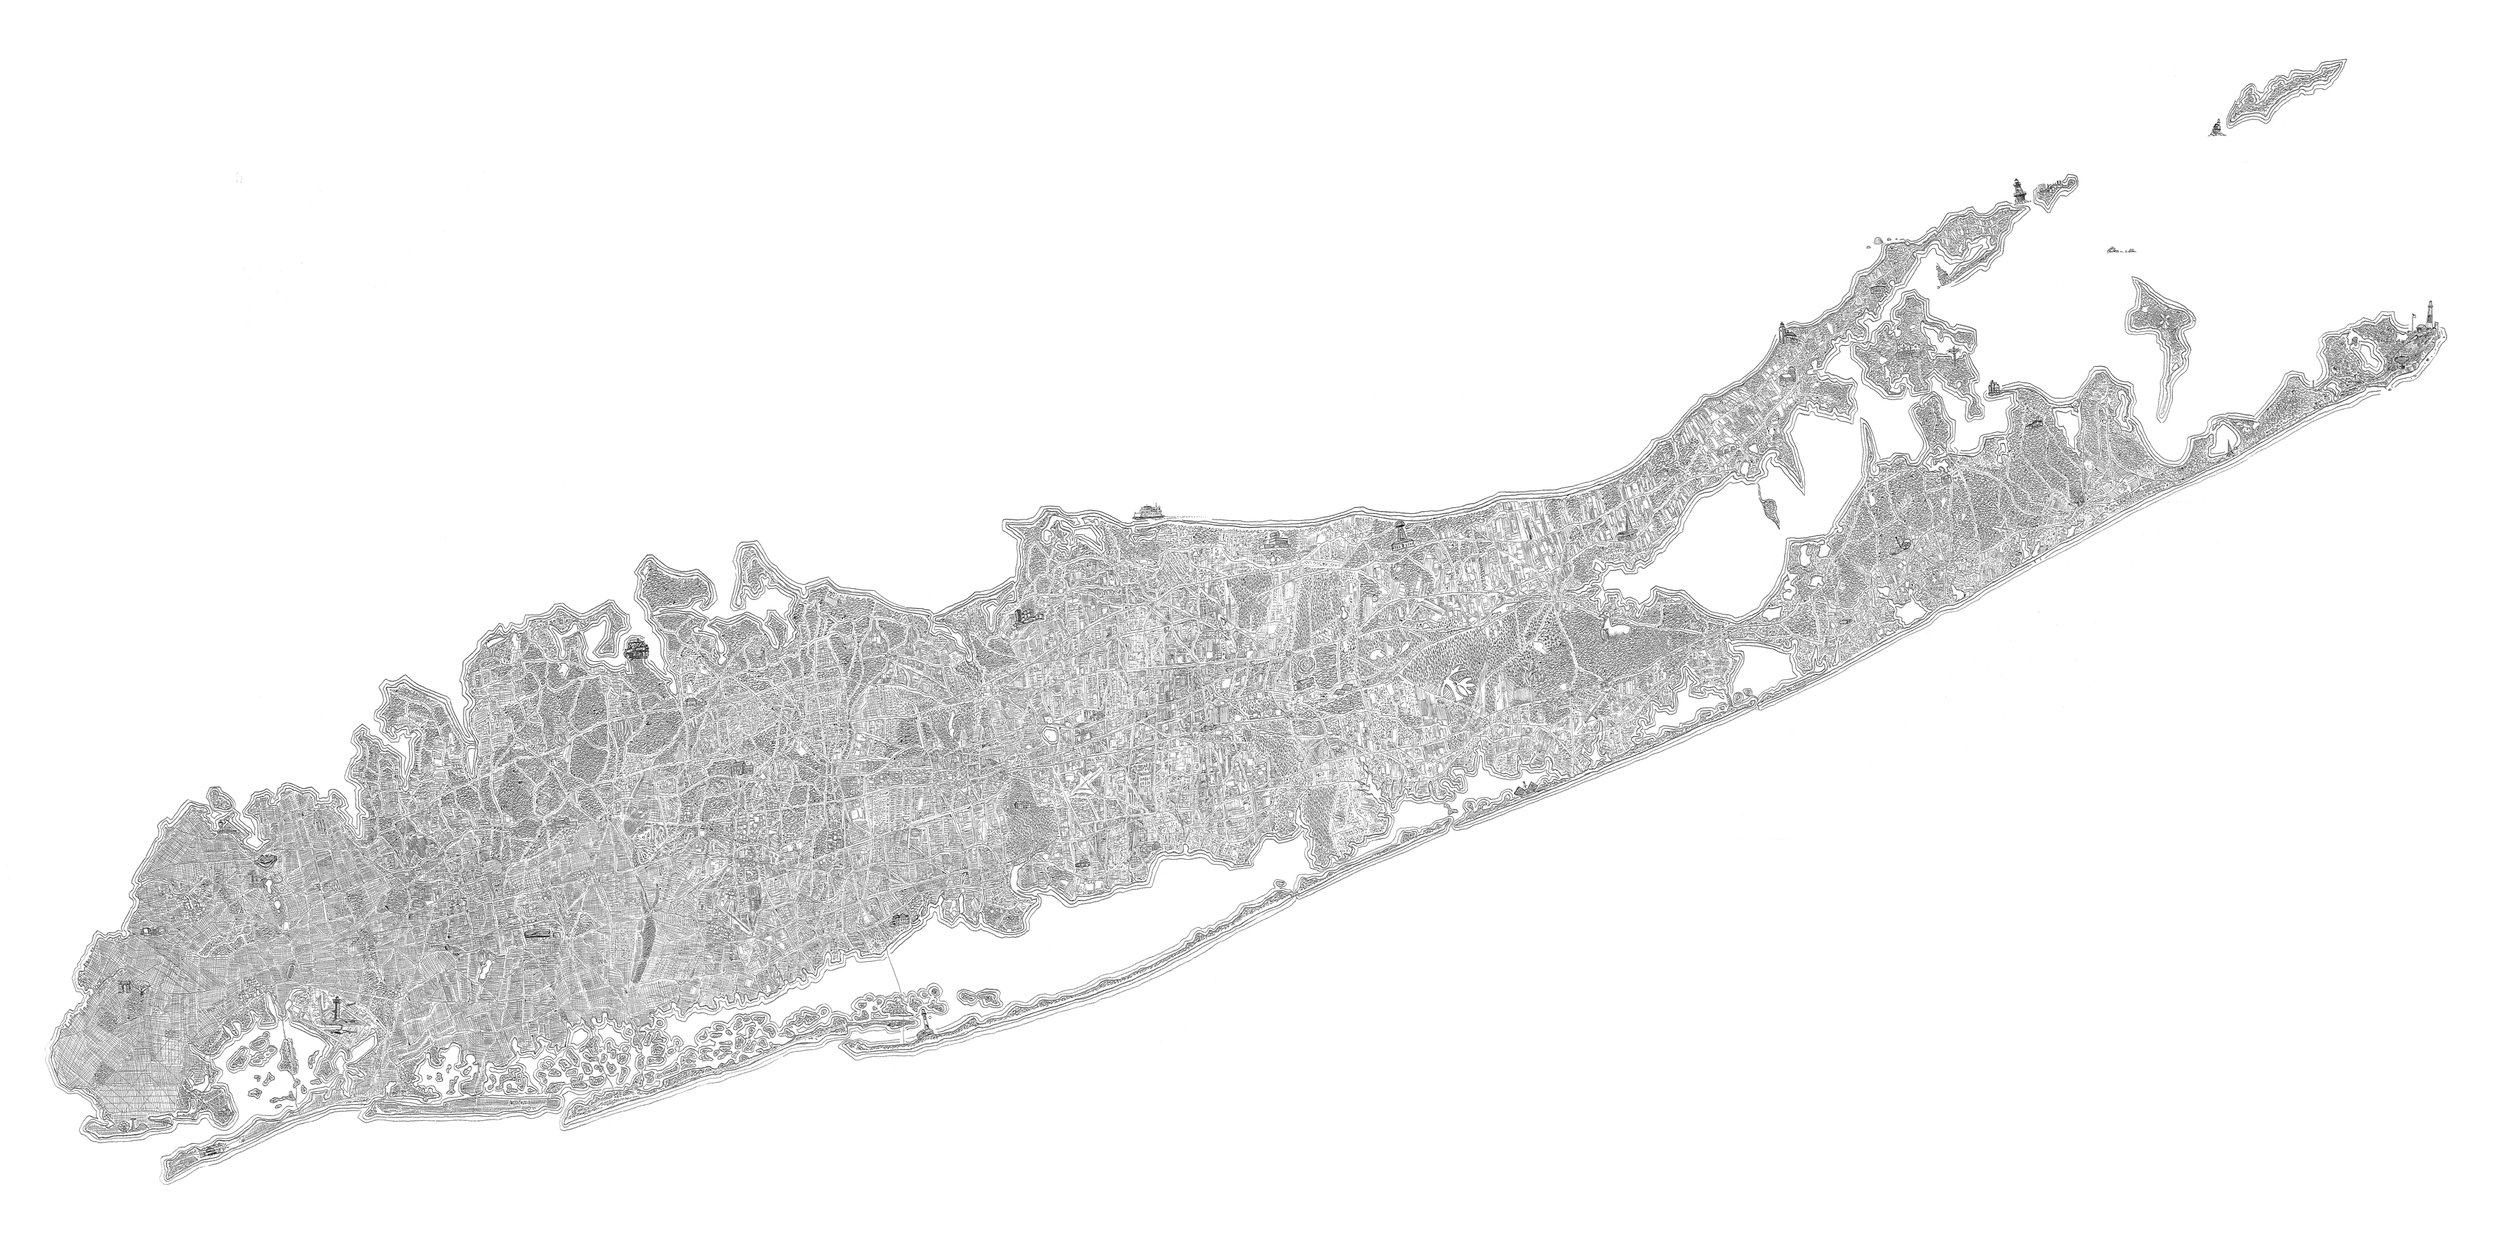 """Long Island    ballpoint pen on paper  24"""" x 48""""  2017  (sold)  (archival digital print available, 12"""" x 24"""", edition of 100)"""